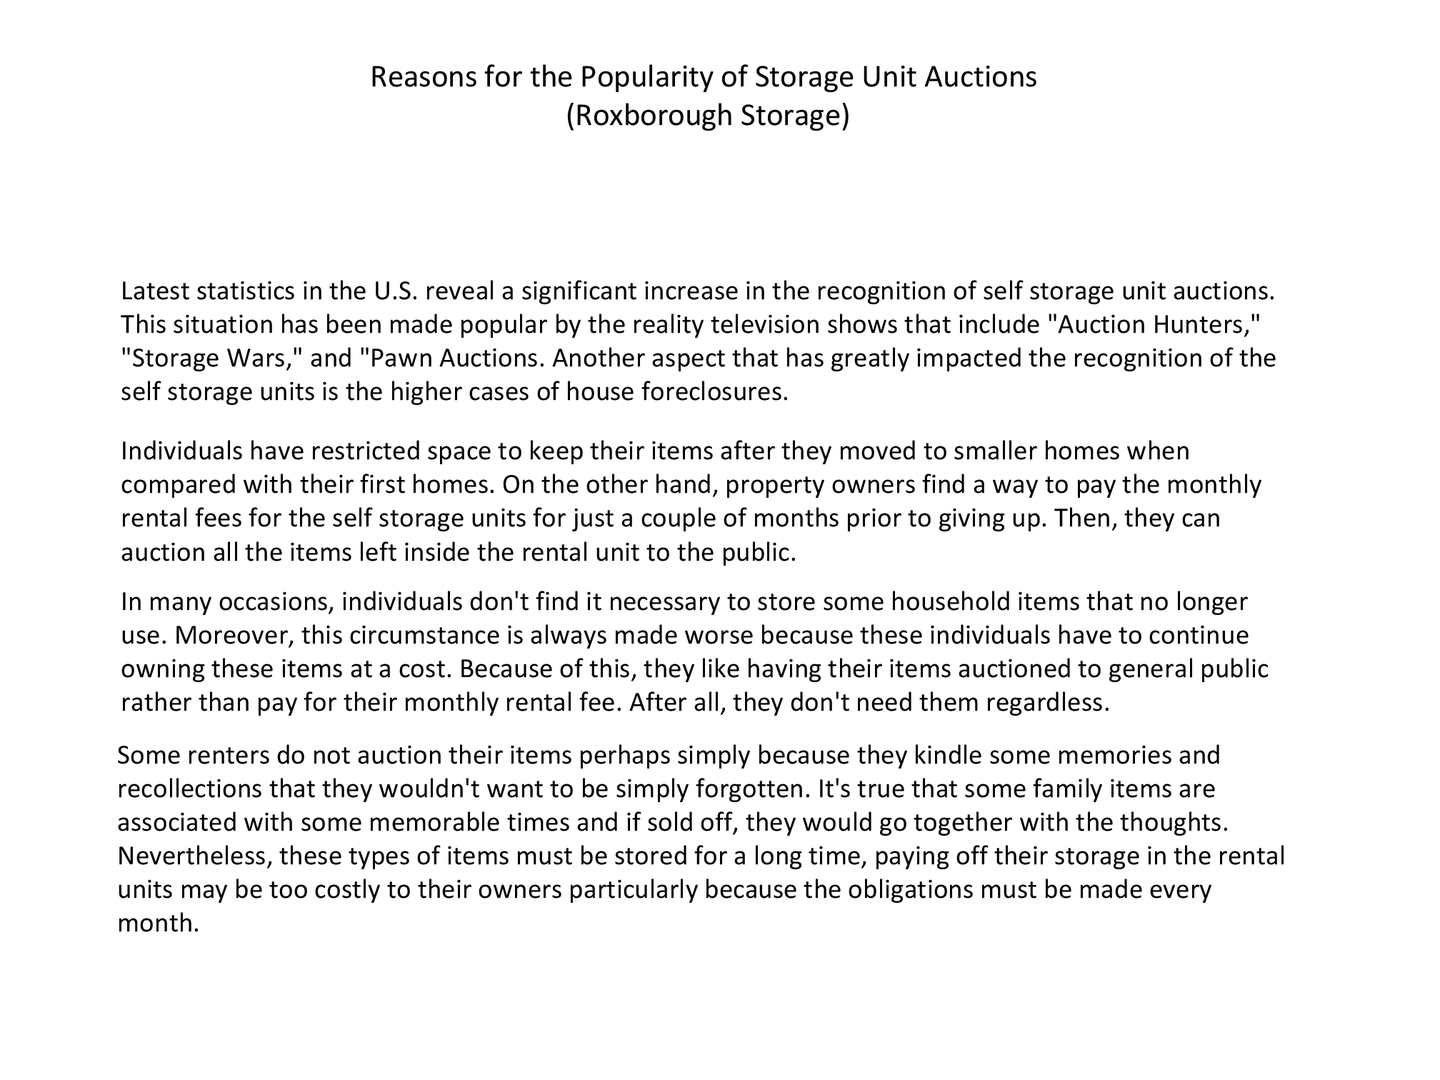 Calaméo - Reasons for the Popularity of Storage Unit Auctions (Roxborough Storage)  sc 1 st  Calameo & Calaméo - Reasons for the Popularity of Storage Unit Auctions ...